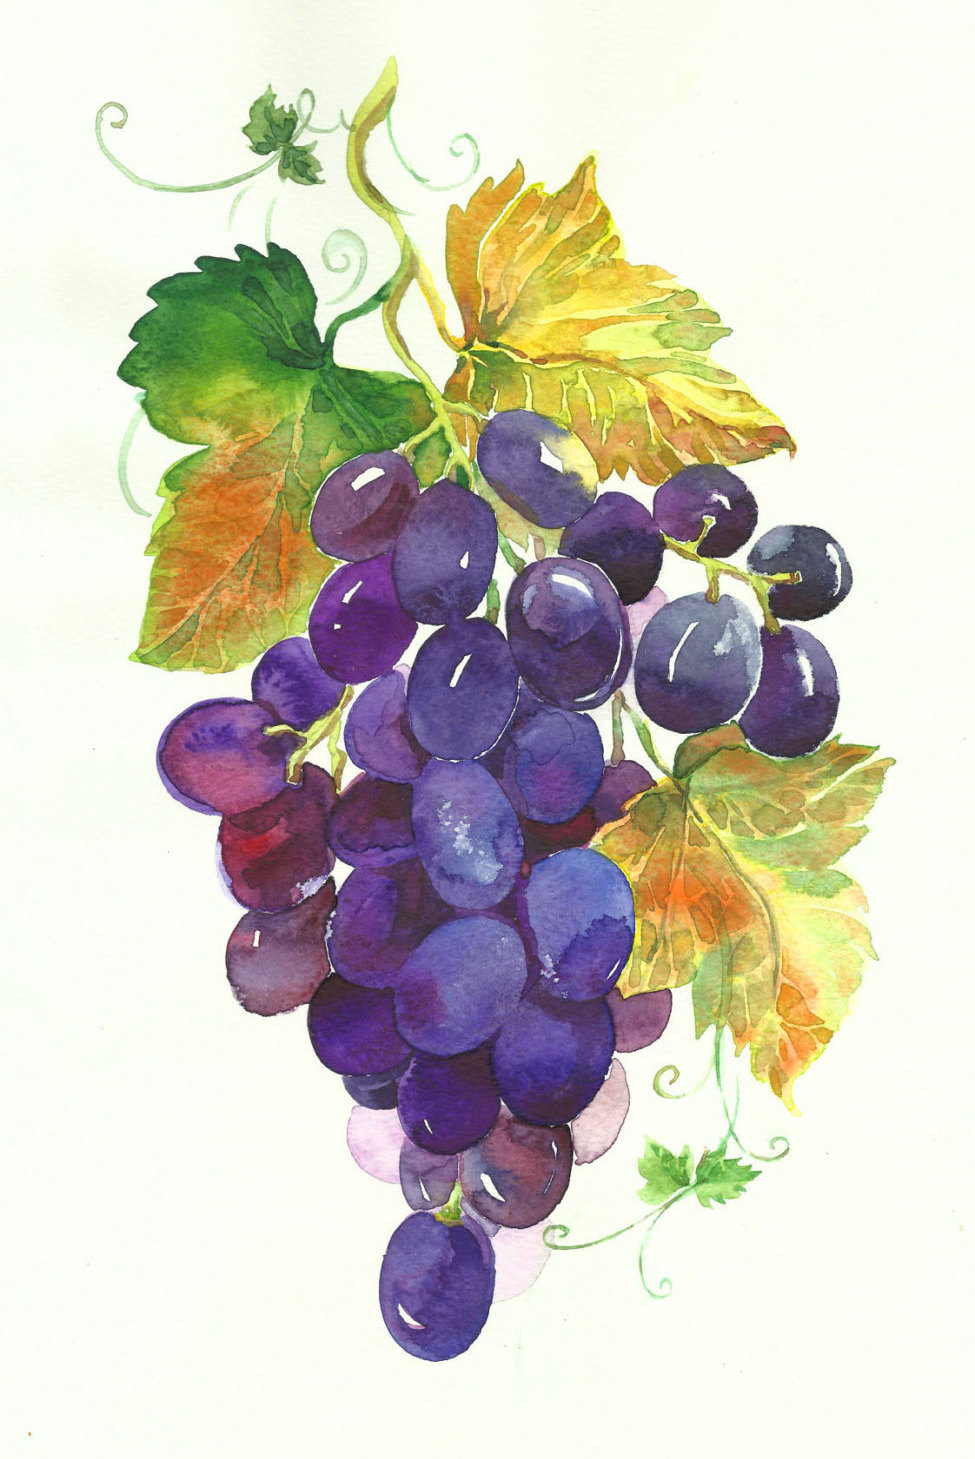 975x1459 Clipart Watercolour Grapes, Grapes Green, Grapes Black, Digital